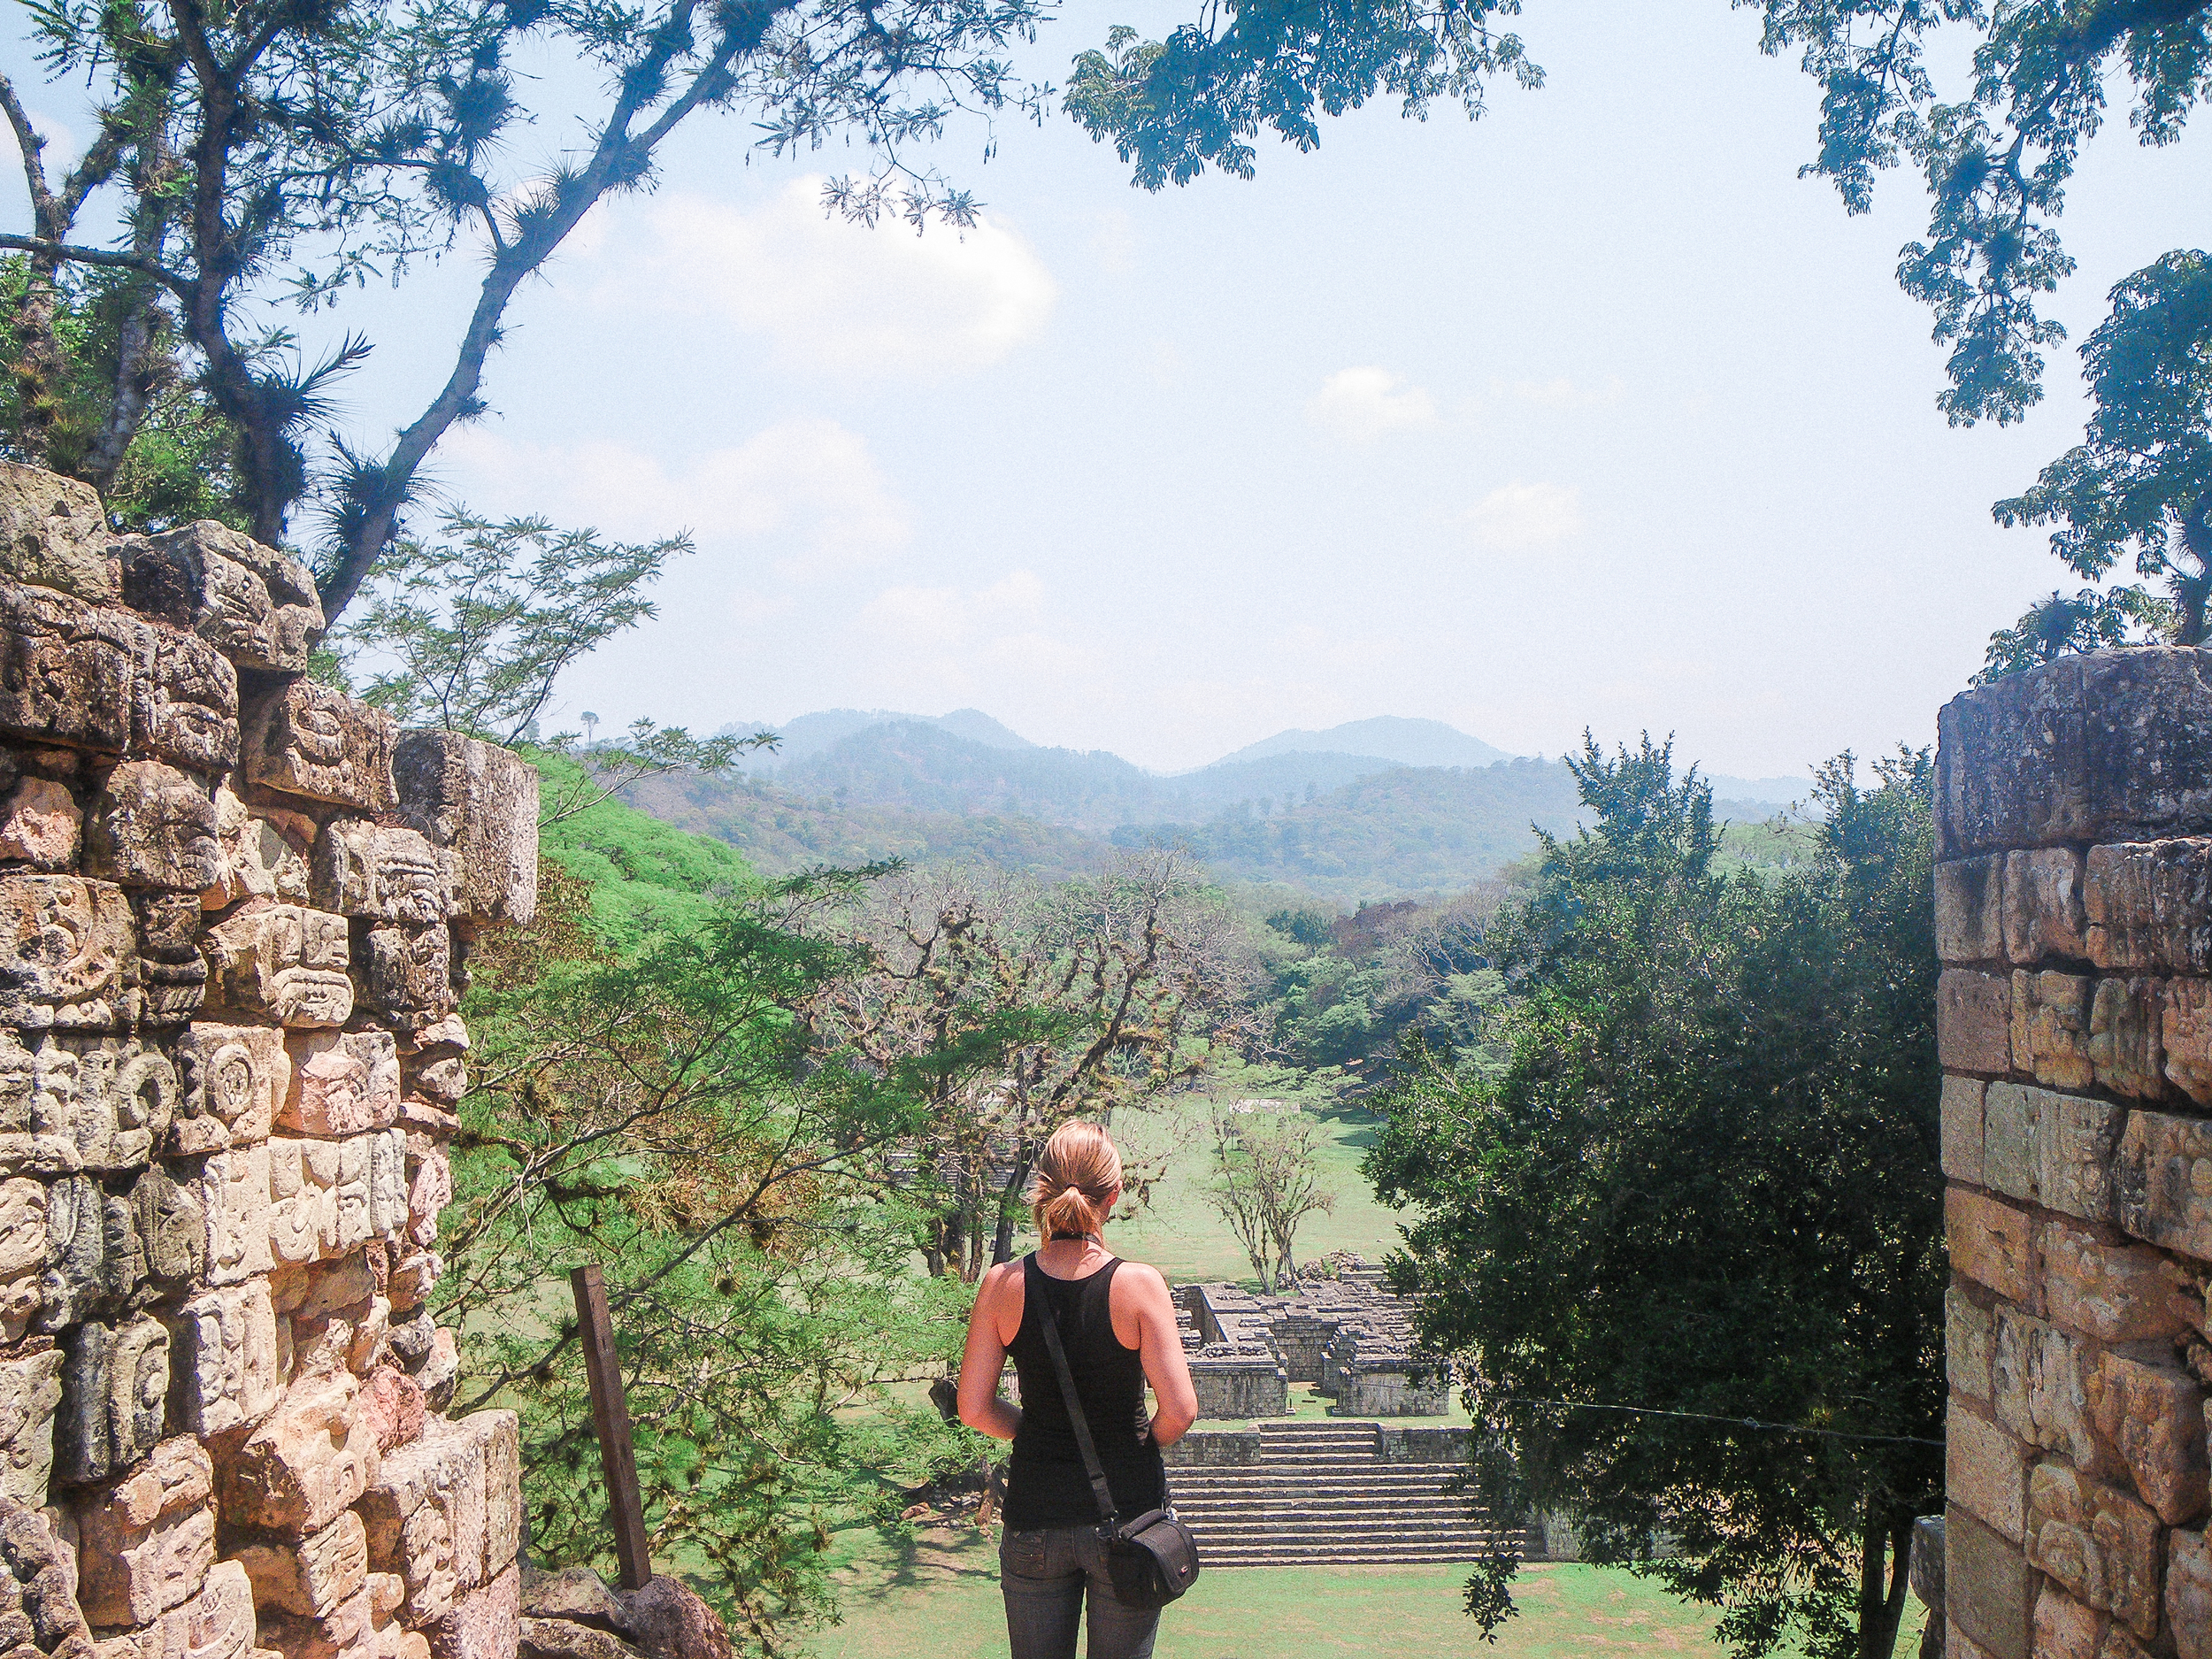 This is from that very backpacking trip - the day we visited Cop á n in Honduras.  Stunningly beautiful and a little haunting to stand within the ruins. But imagine waking up each day to that view....